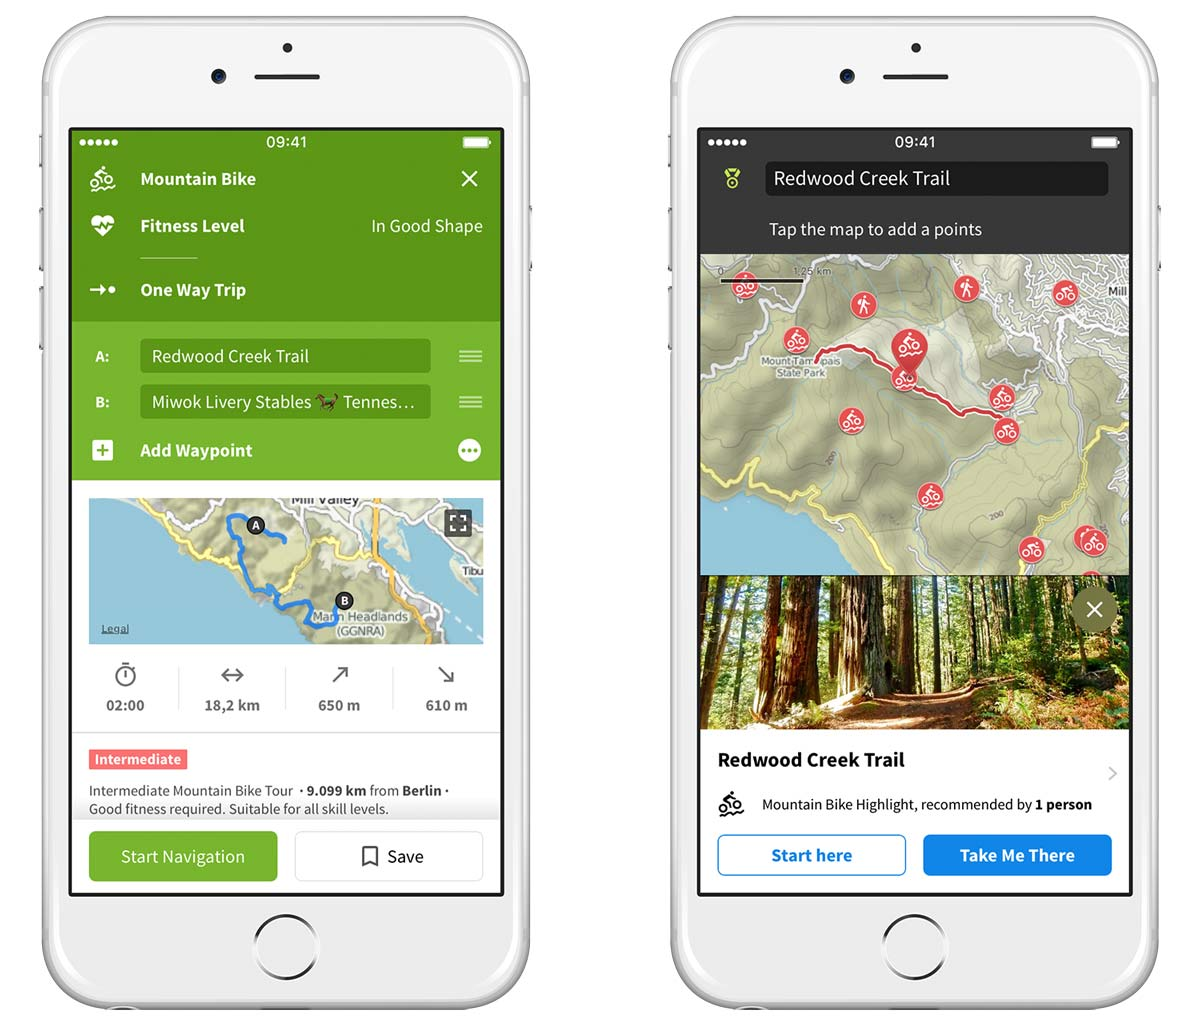 komoot lets you plan mountain bike routes and navigates you through the trail